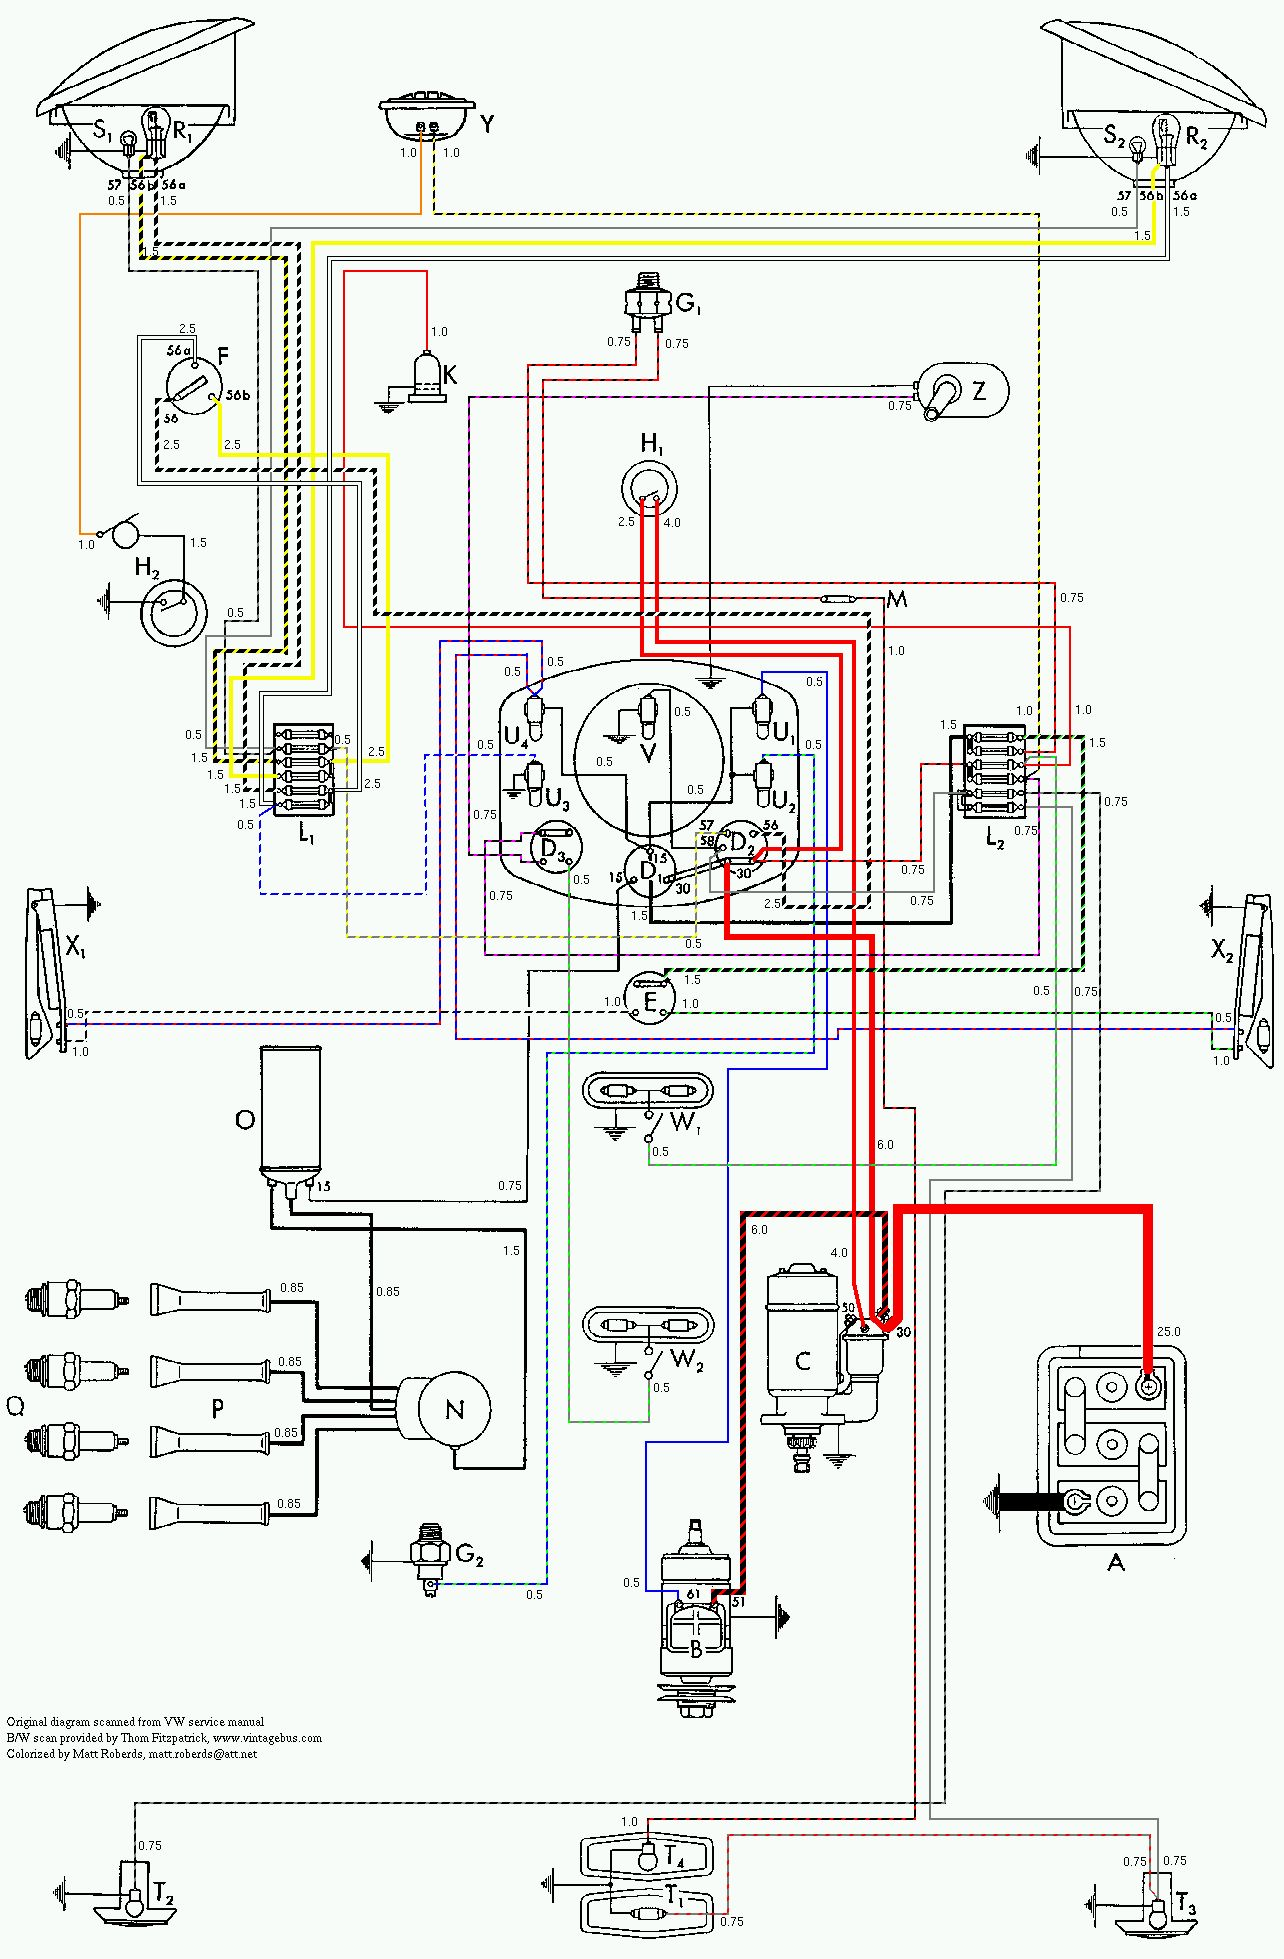 Vw Bus And Other Wiring Diagrams 1964 Honda 50 Engine Diagram